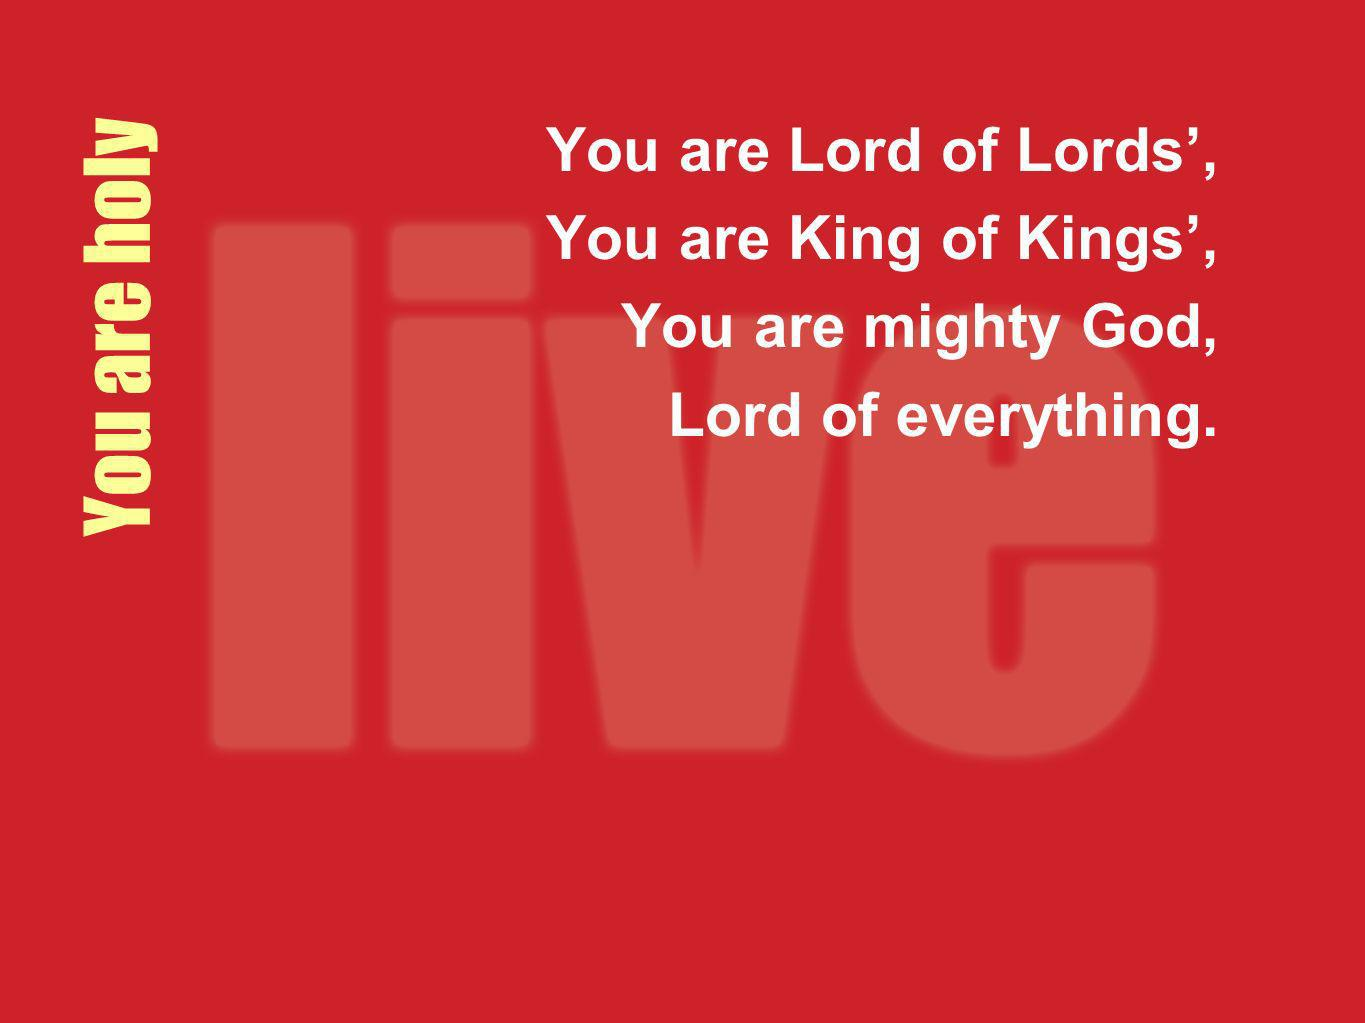 You are holy You are Lord of Lords, You are King of Kings, You are mighty God, Lord of everything.